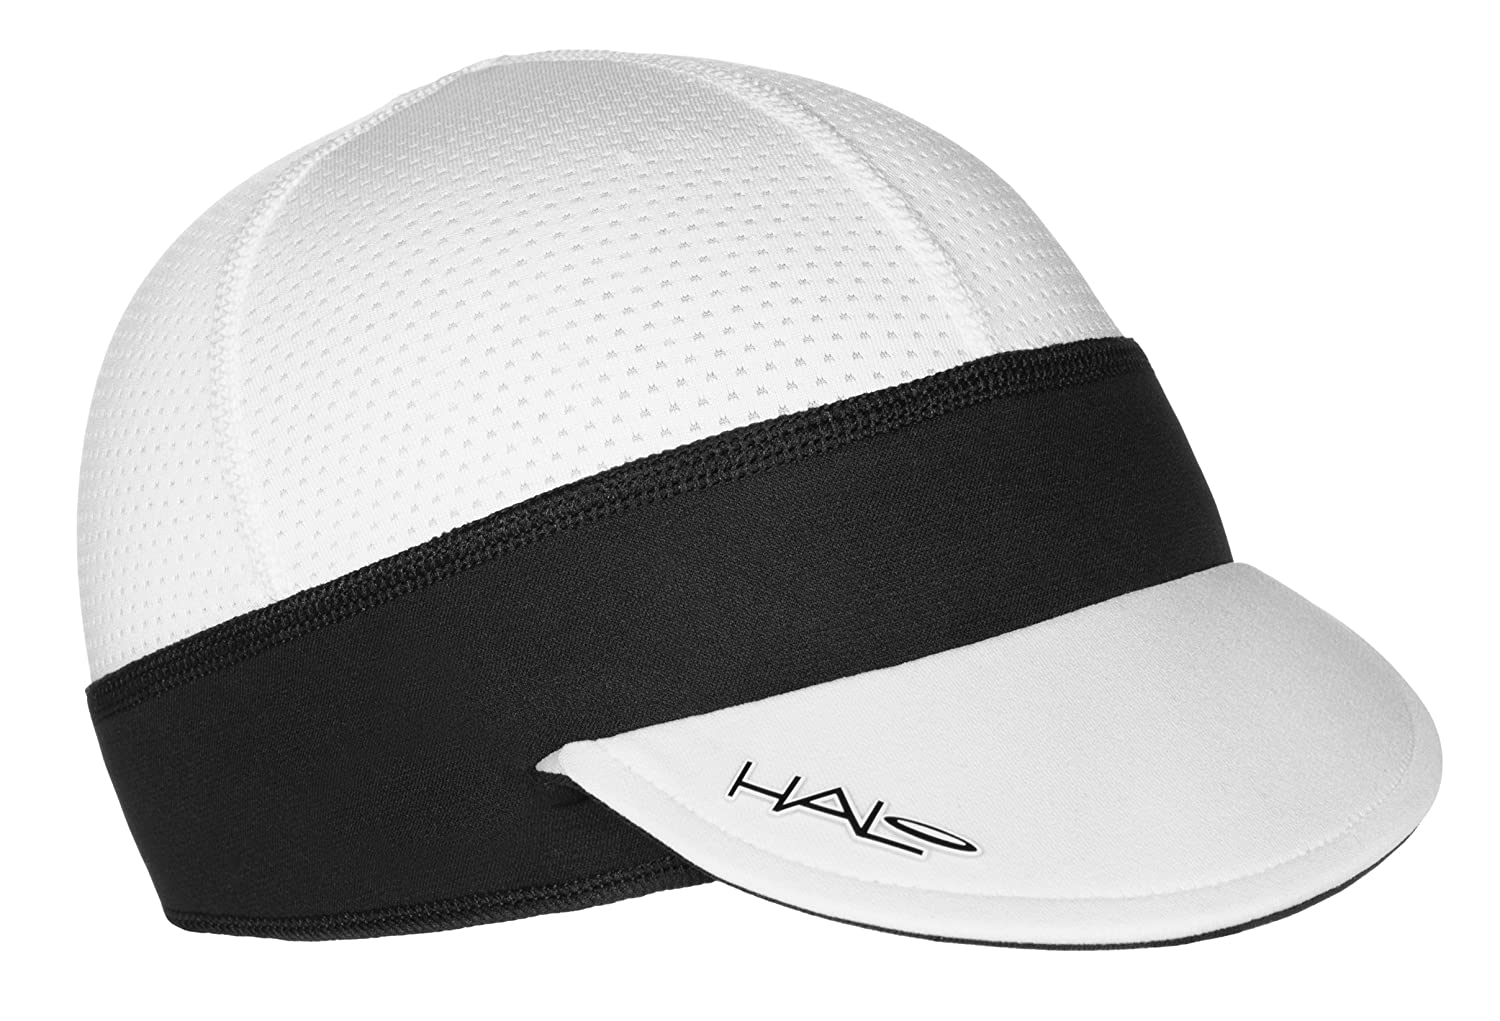 Halo Headbands Black Cycling Skull Cap with Visor HCCBLACK